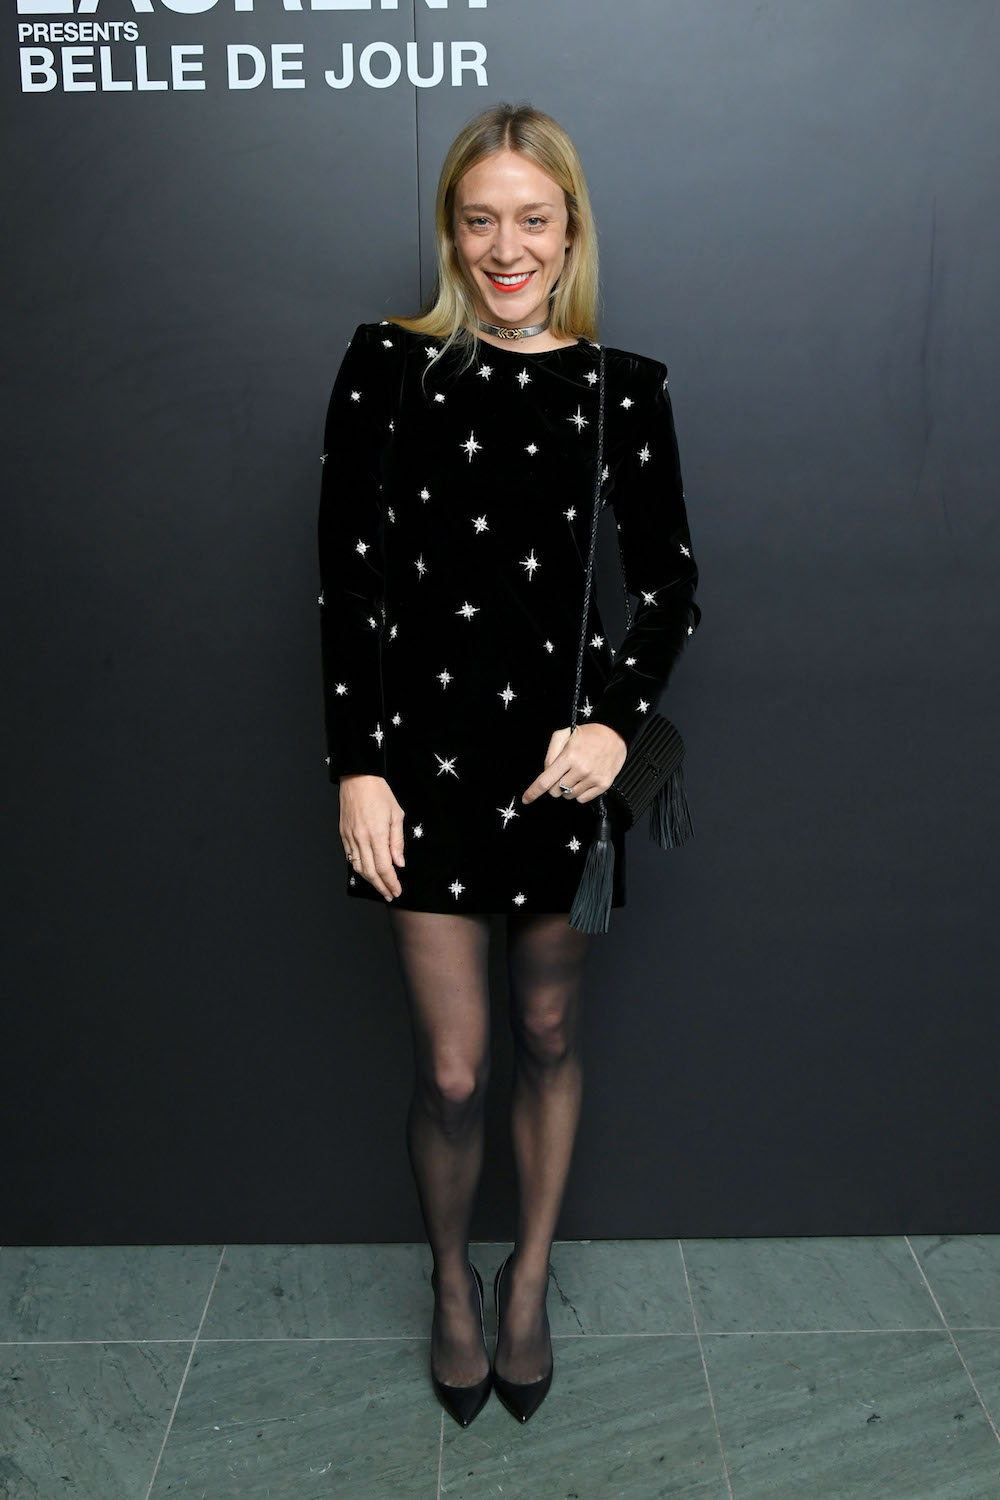 "NEW YORK, NEW YORK - DECEMBER 19: Actress Chloë Sevigny attends the Saint Laurent Presents ""Belle De Jour"" 50th Anniversary Screening at Museum of Modern Art on December 19, 2018 in New York City. (Photo by Mike Coppola/Getty Images)"